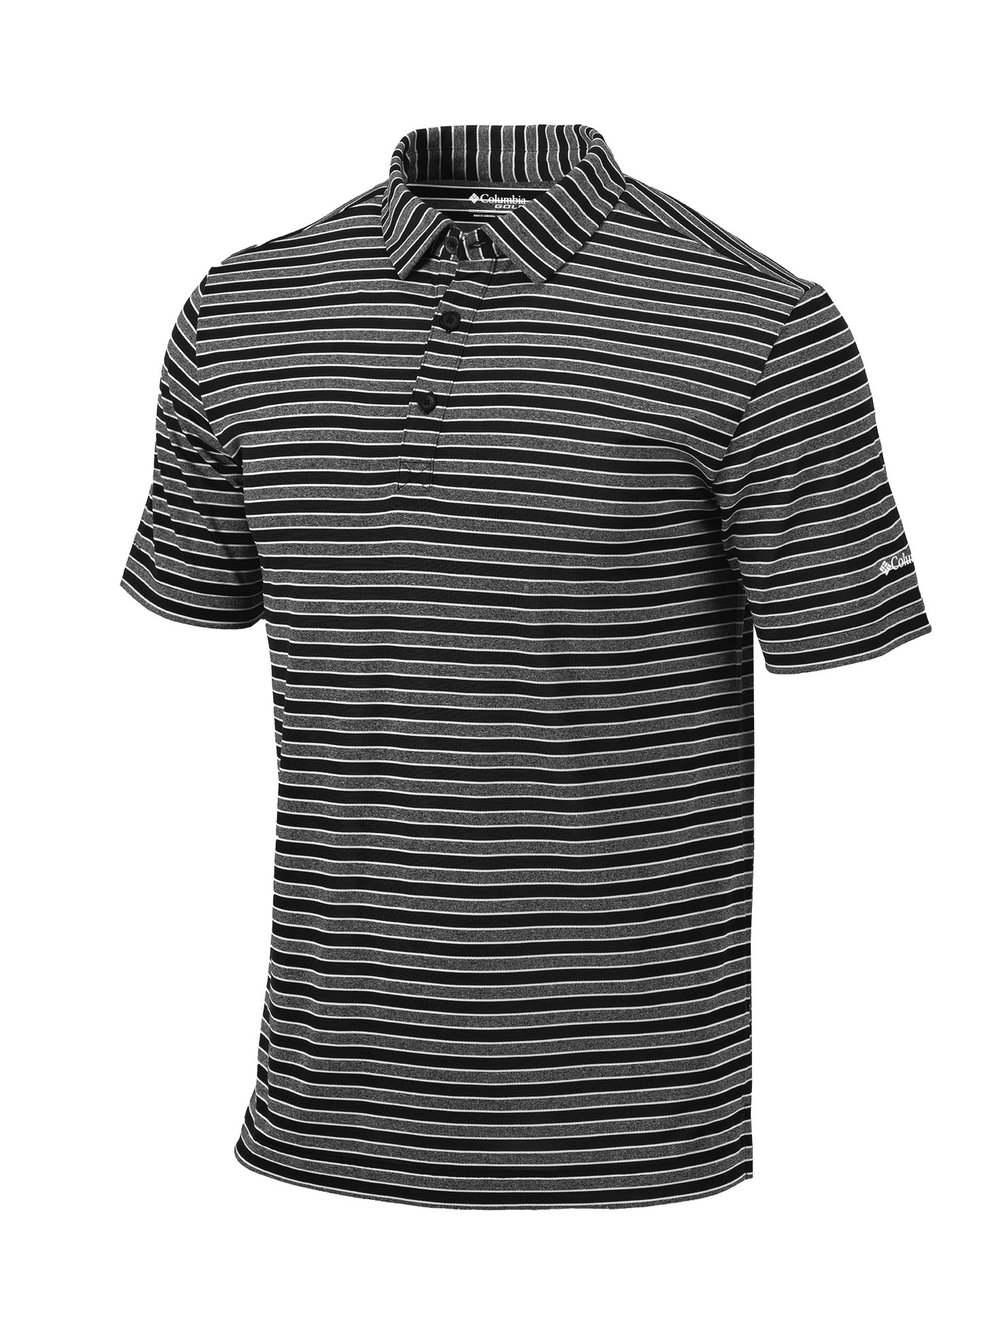 Stripped Polo from Columbia